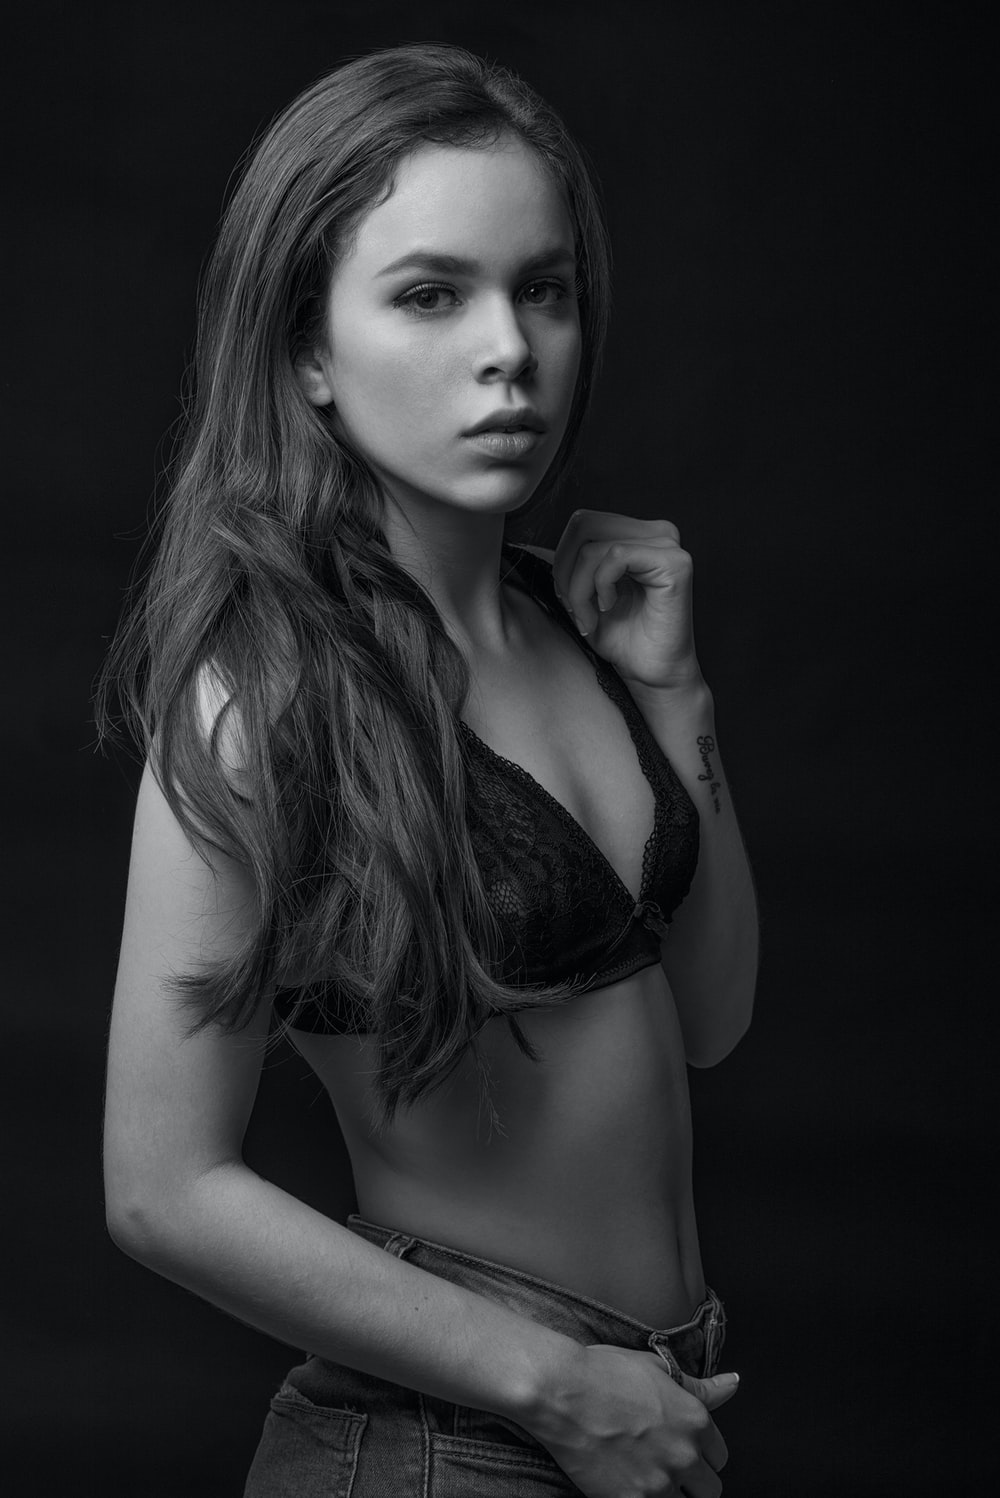 grayscale photography of woman wearing brassiere